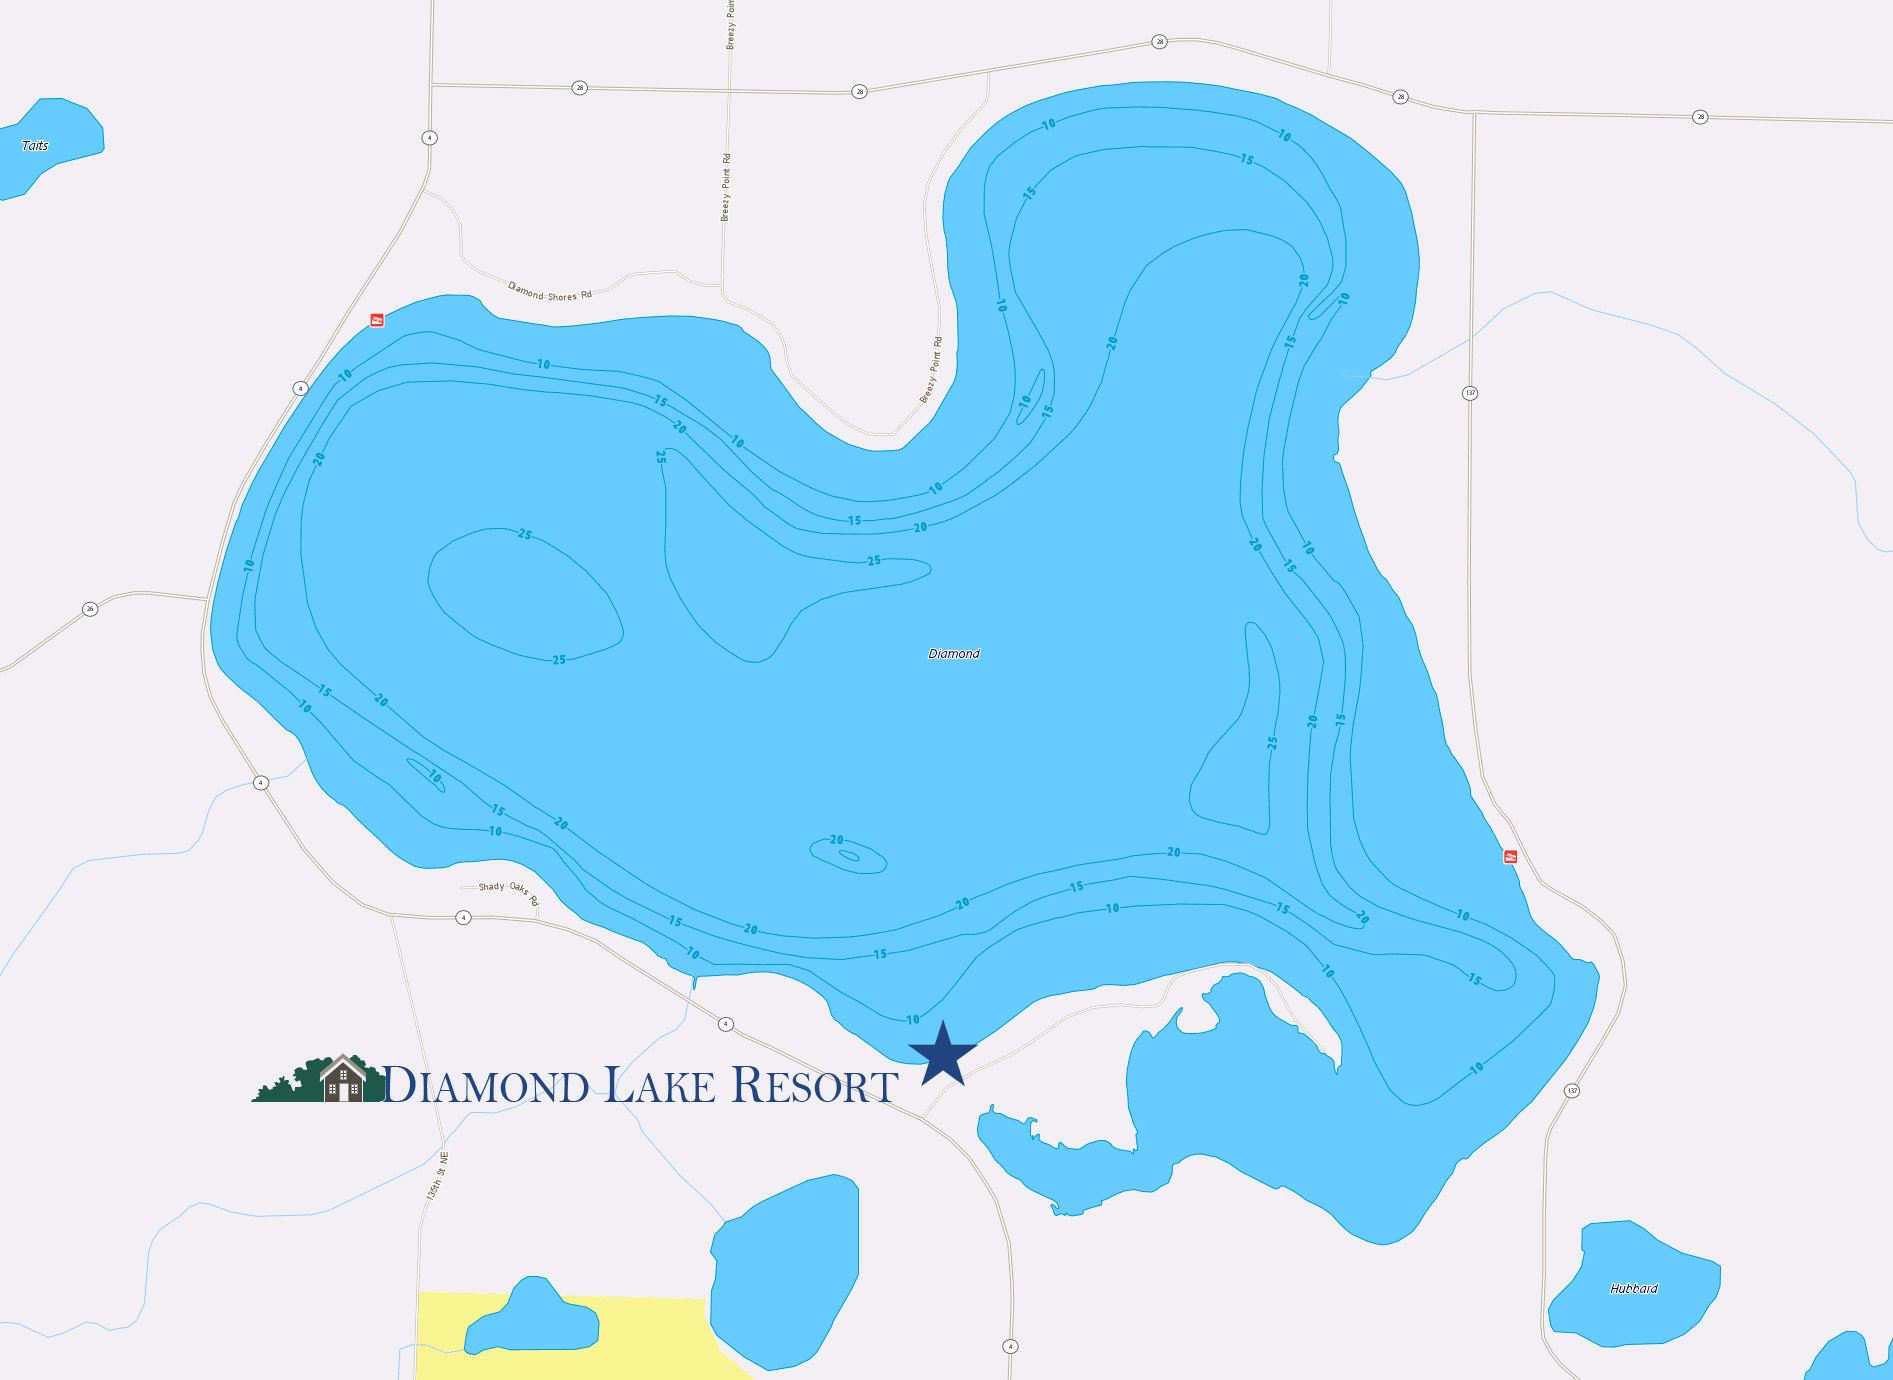 Diamond lake Map - Near Spicer, MN